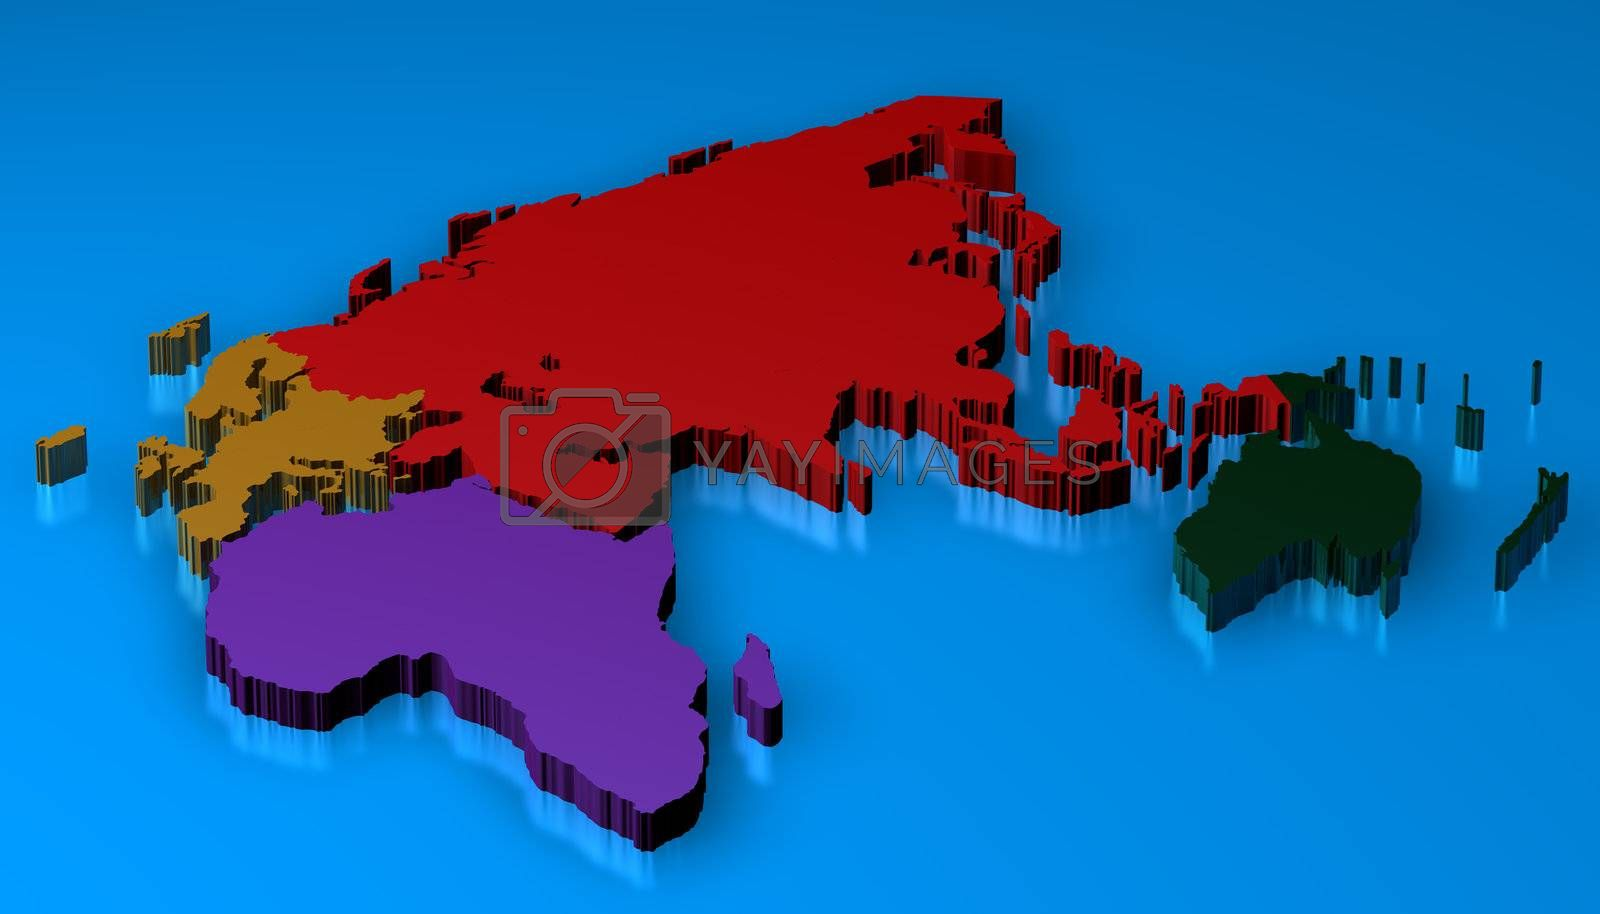 3D Map rendered of europa, africa, asia, oceania and russia over a blue floor with reflection